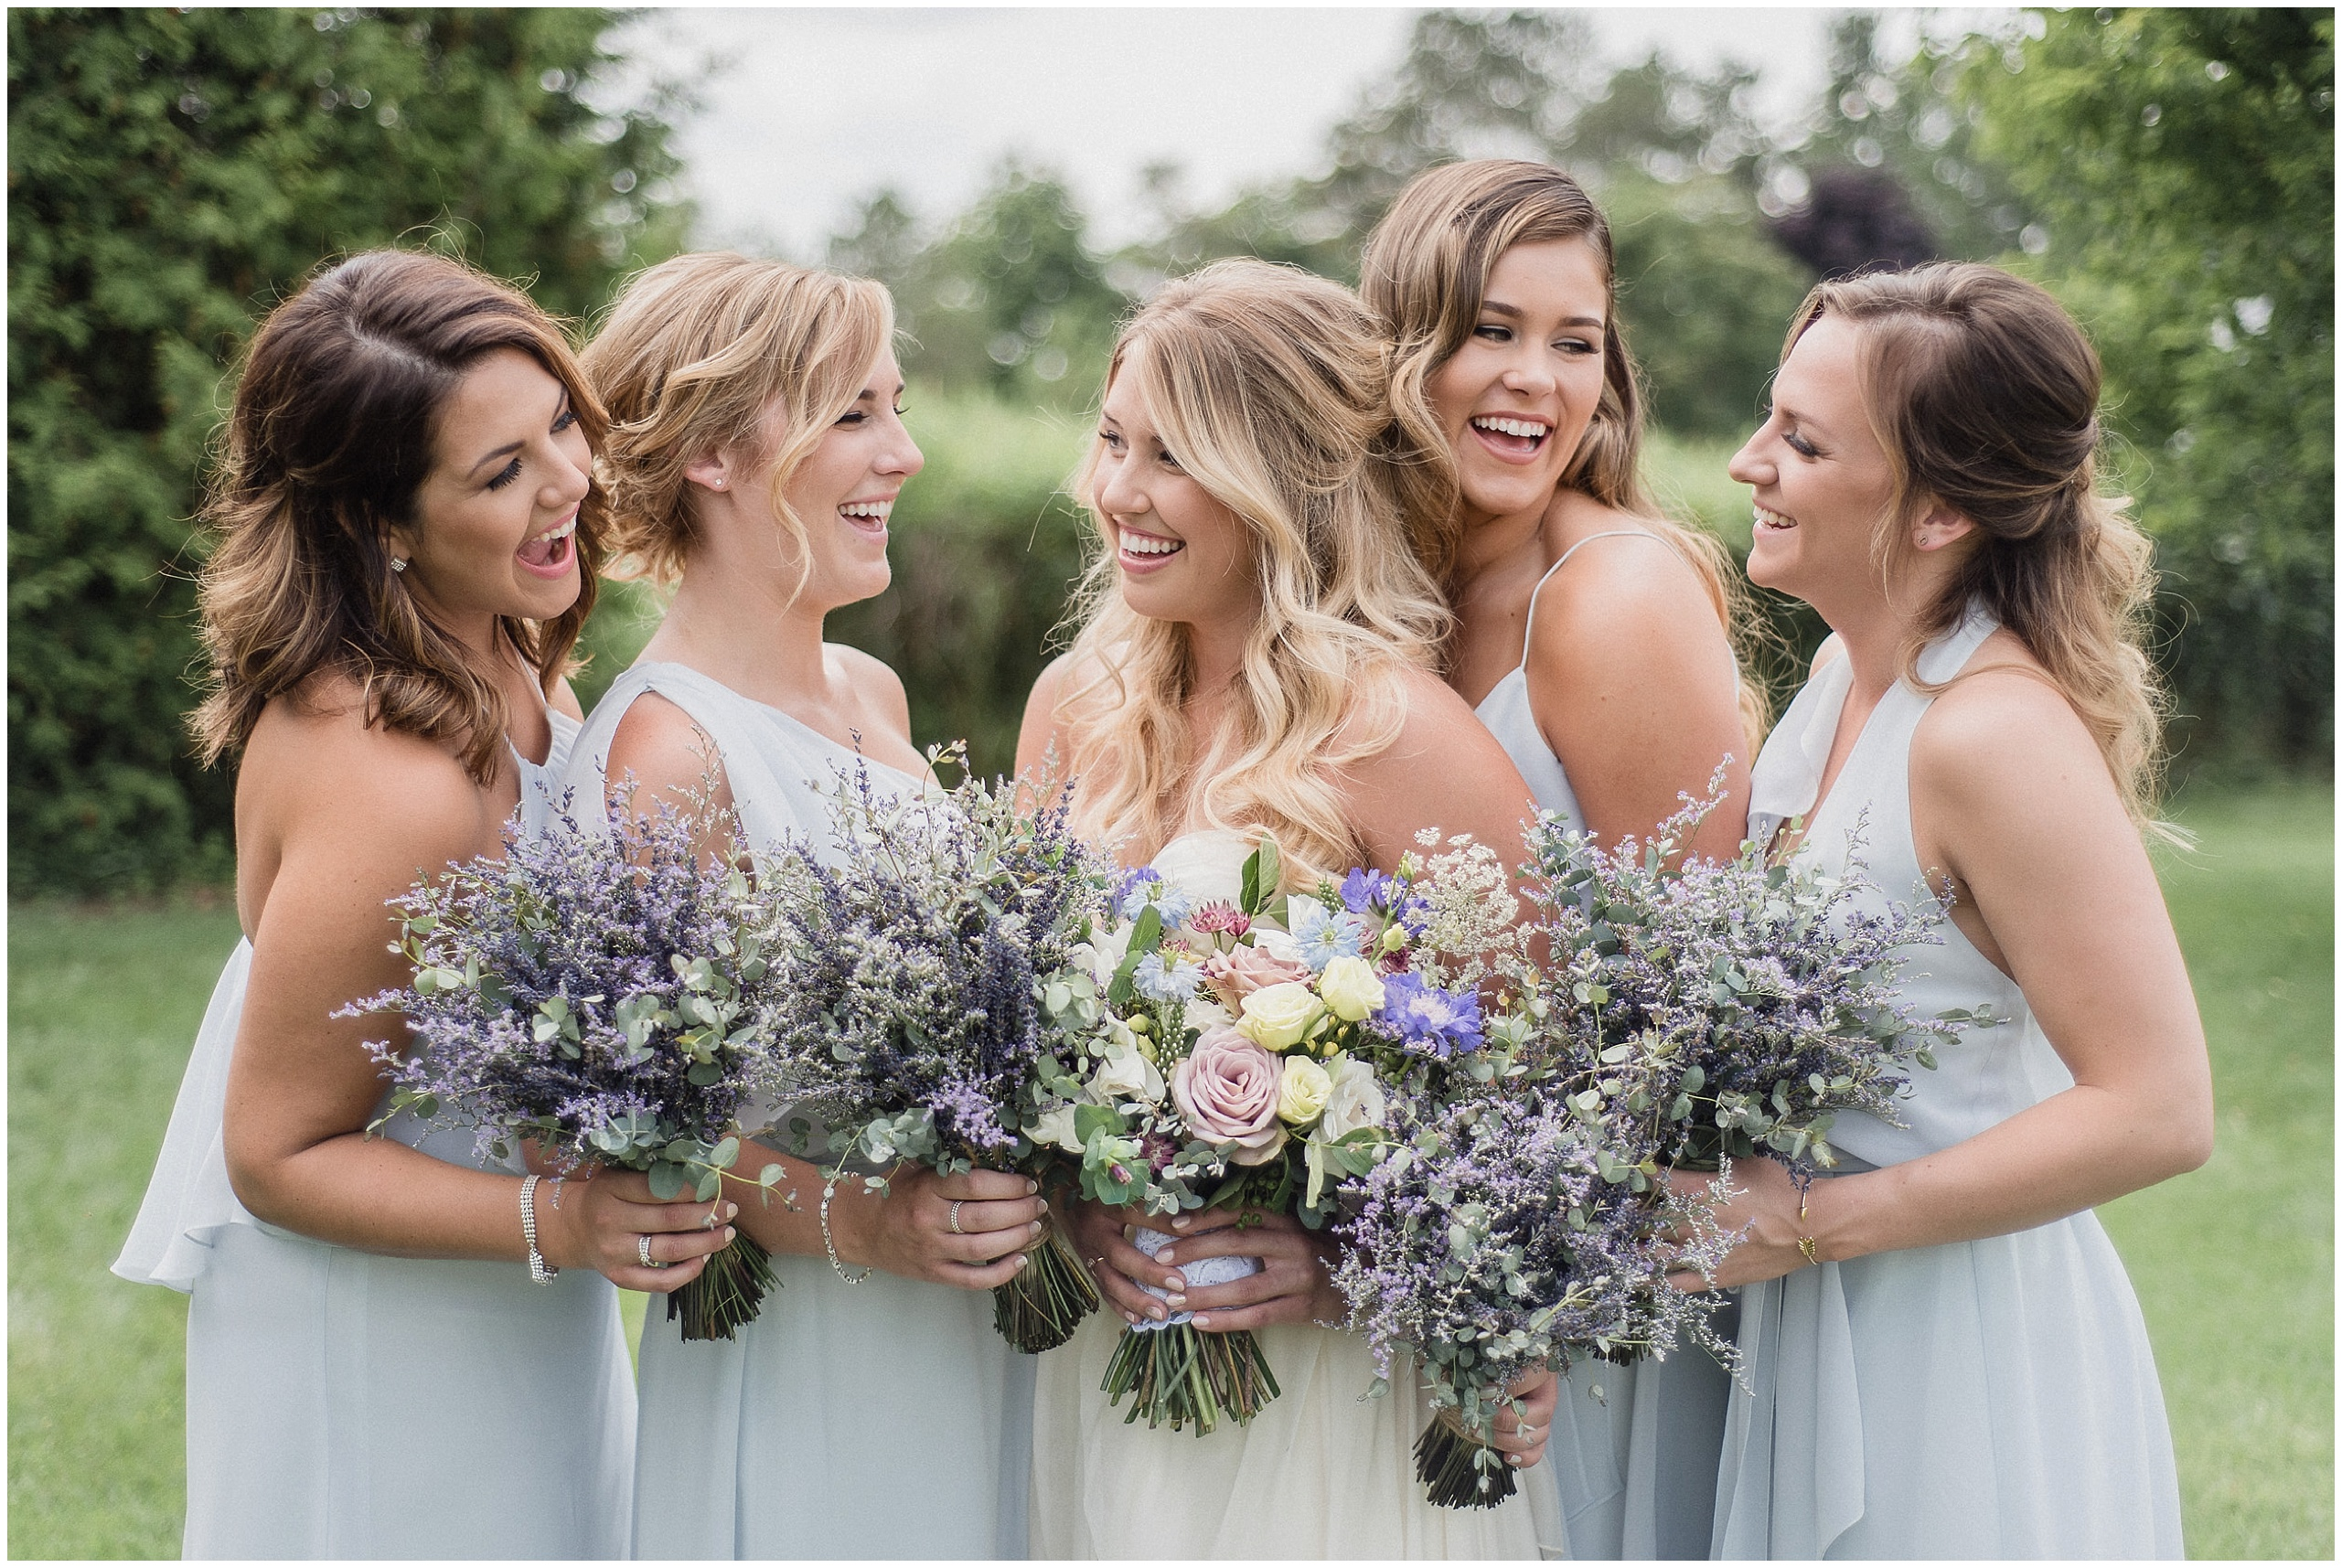 Nouvelle Amsale bridesmaids dresses photographed by Jenn Kavanagh Photography